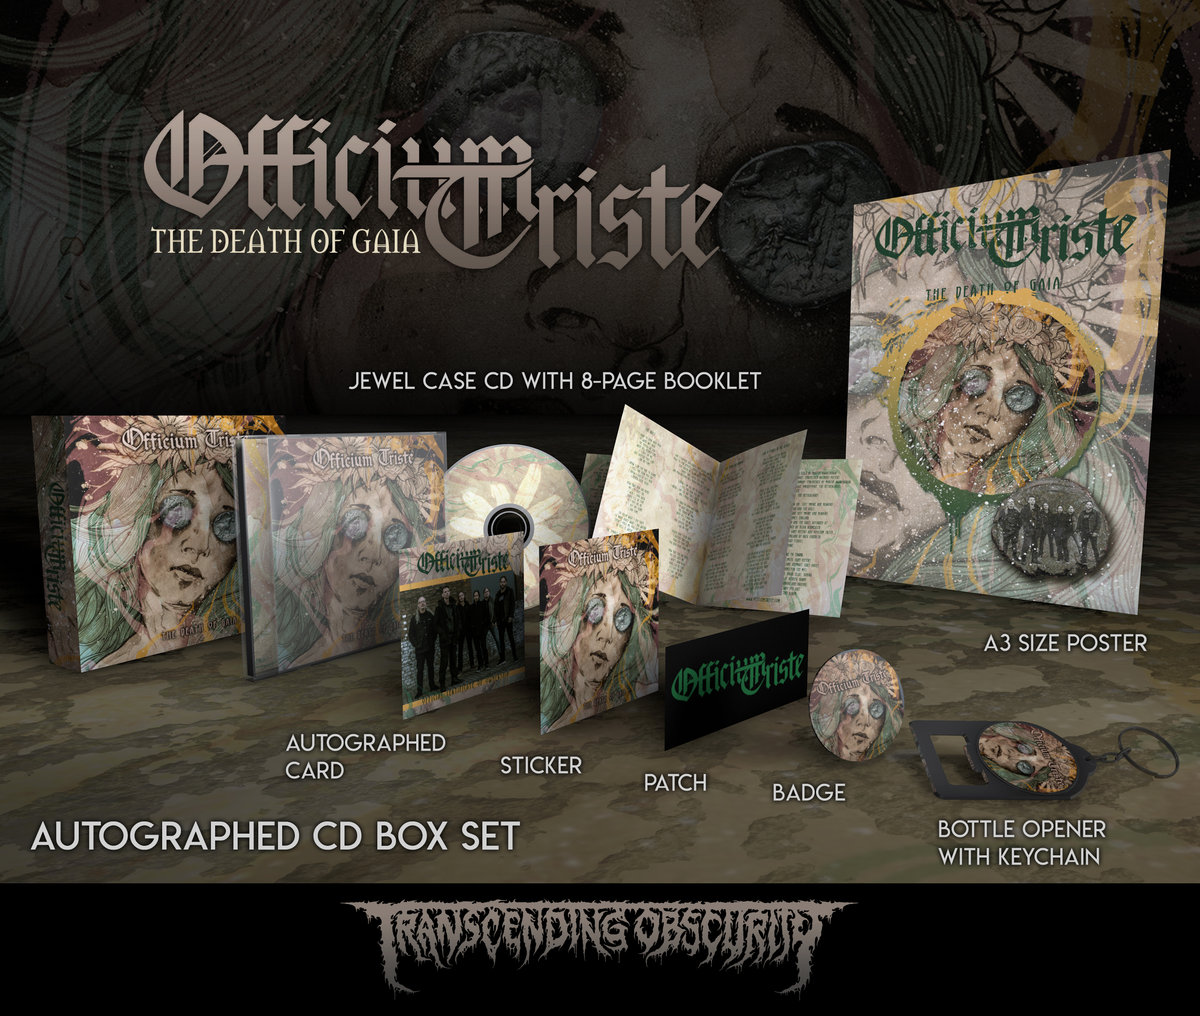 OFFICIUM TRISTE Autographed CD Box Set (Limited to 150)